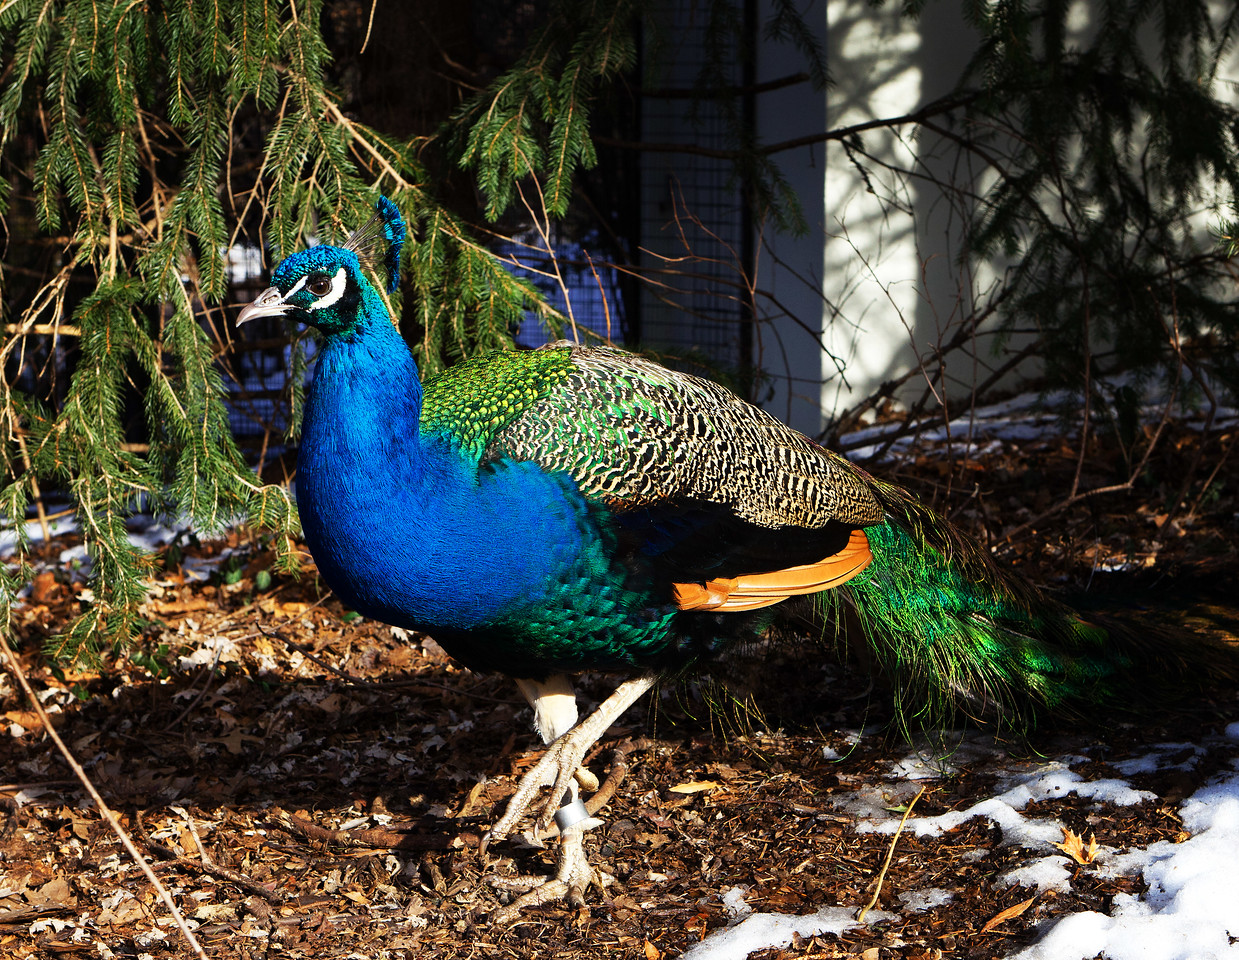 Wintertime at the Jewel Box, Forest Park, and the St. Louis Zoo.